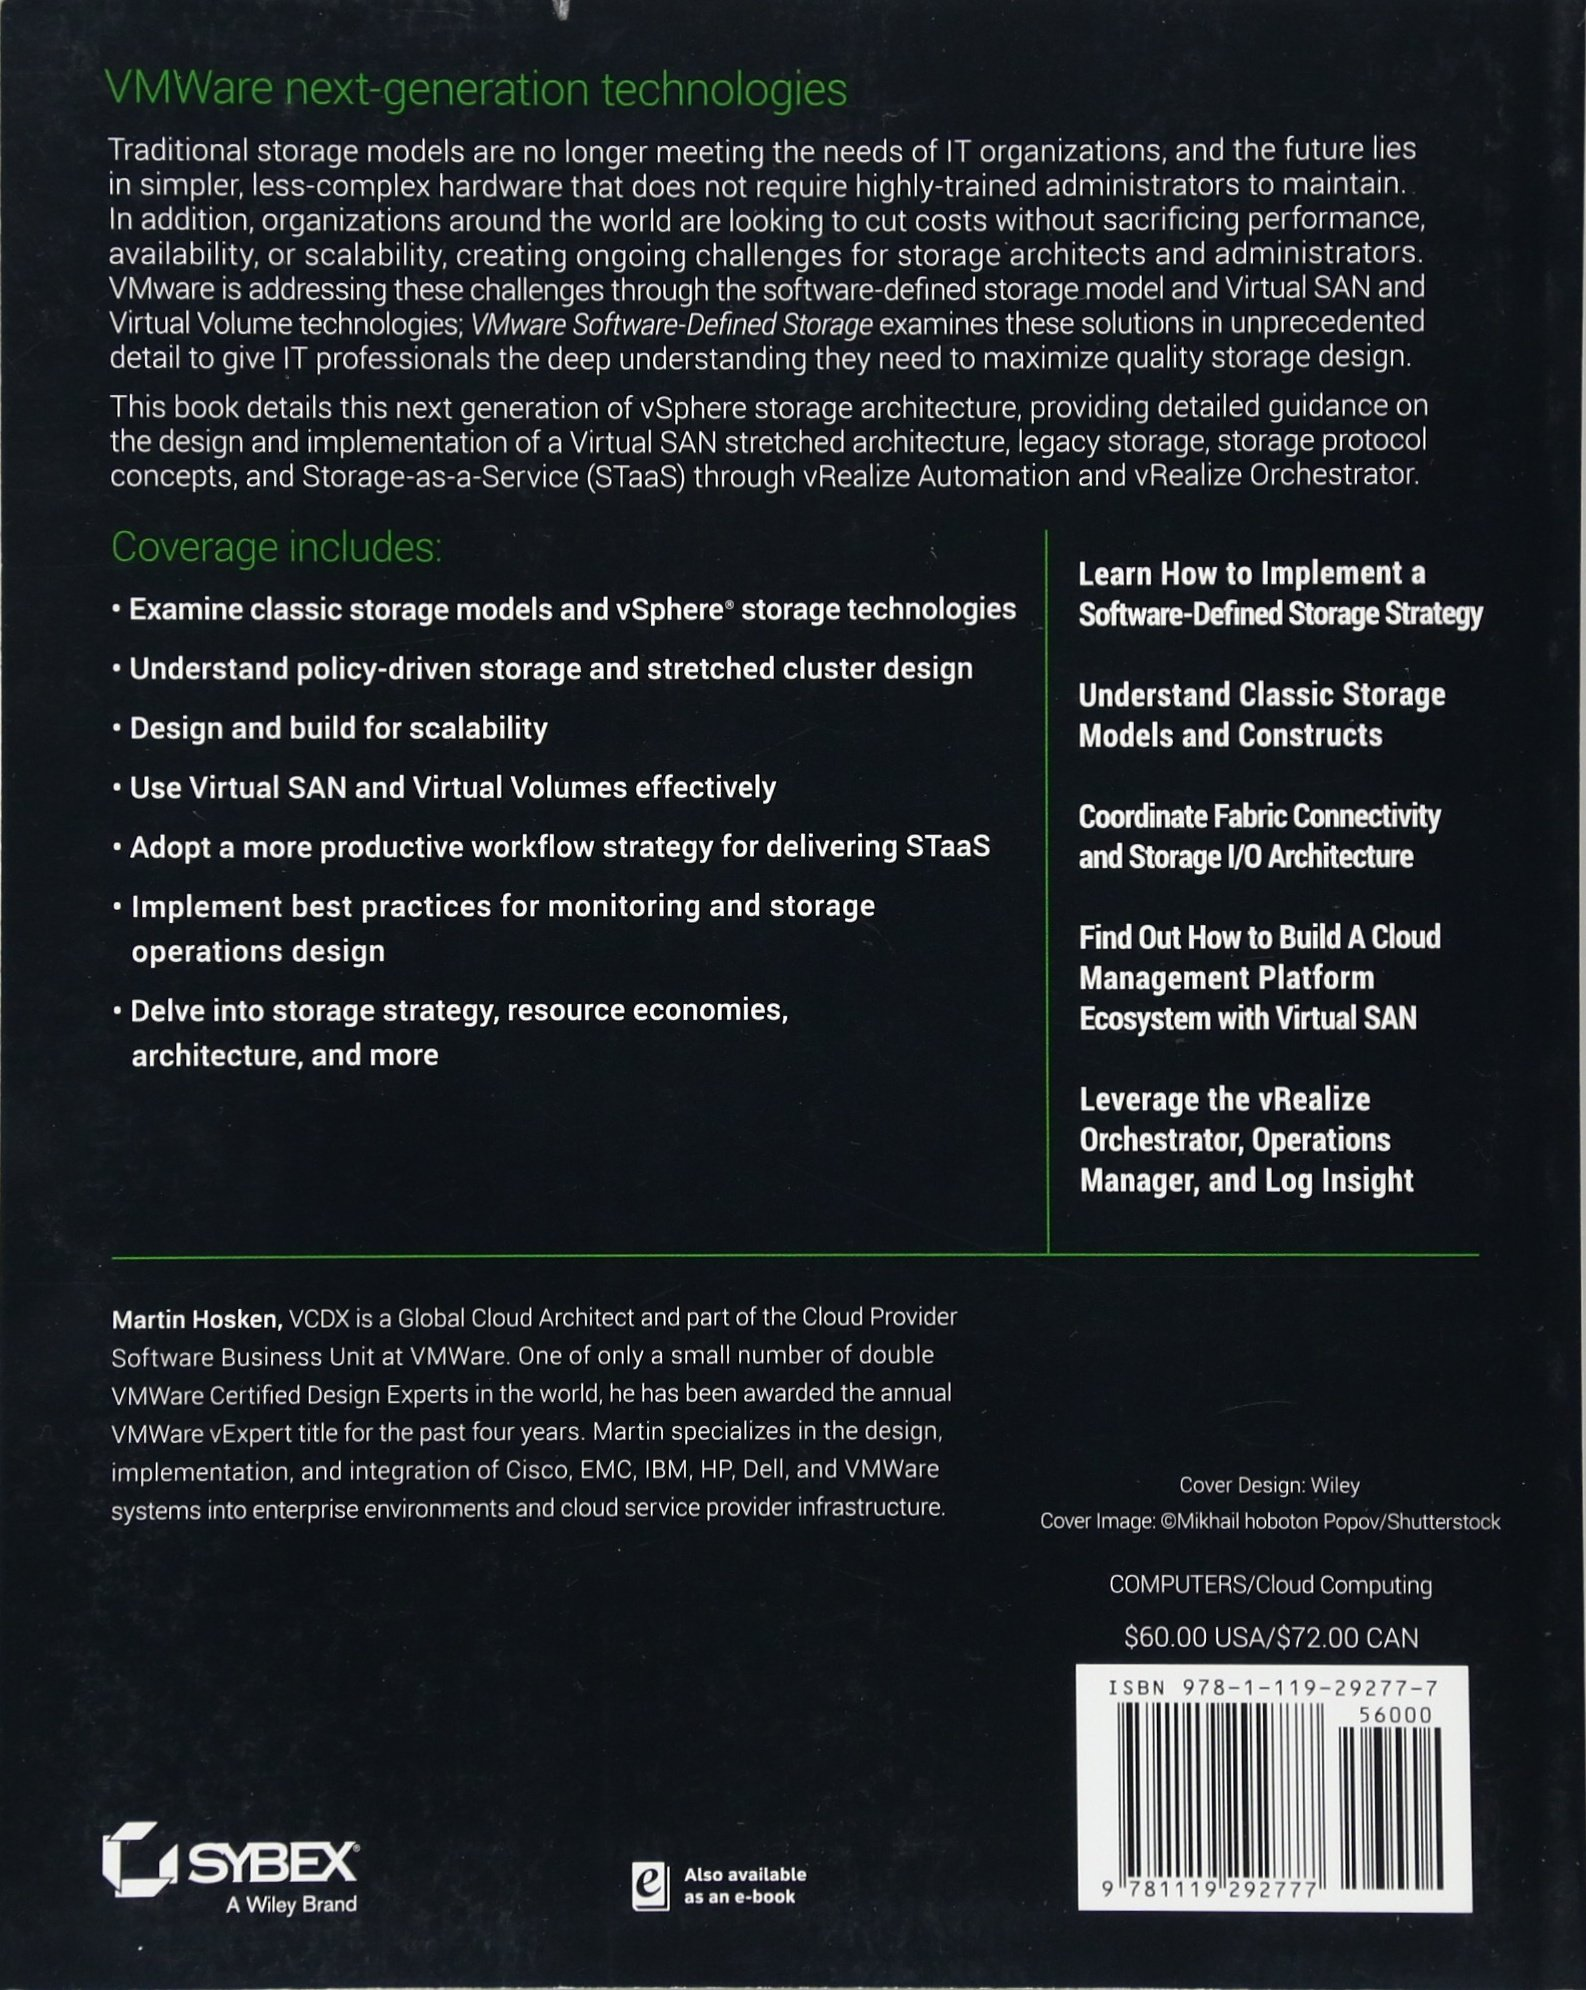 VMware Software-Defined Storage: A Design Guide to the